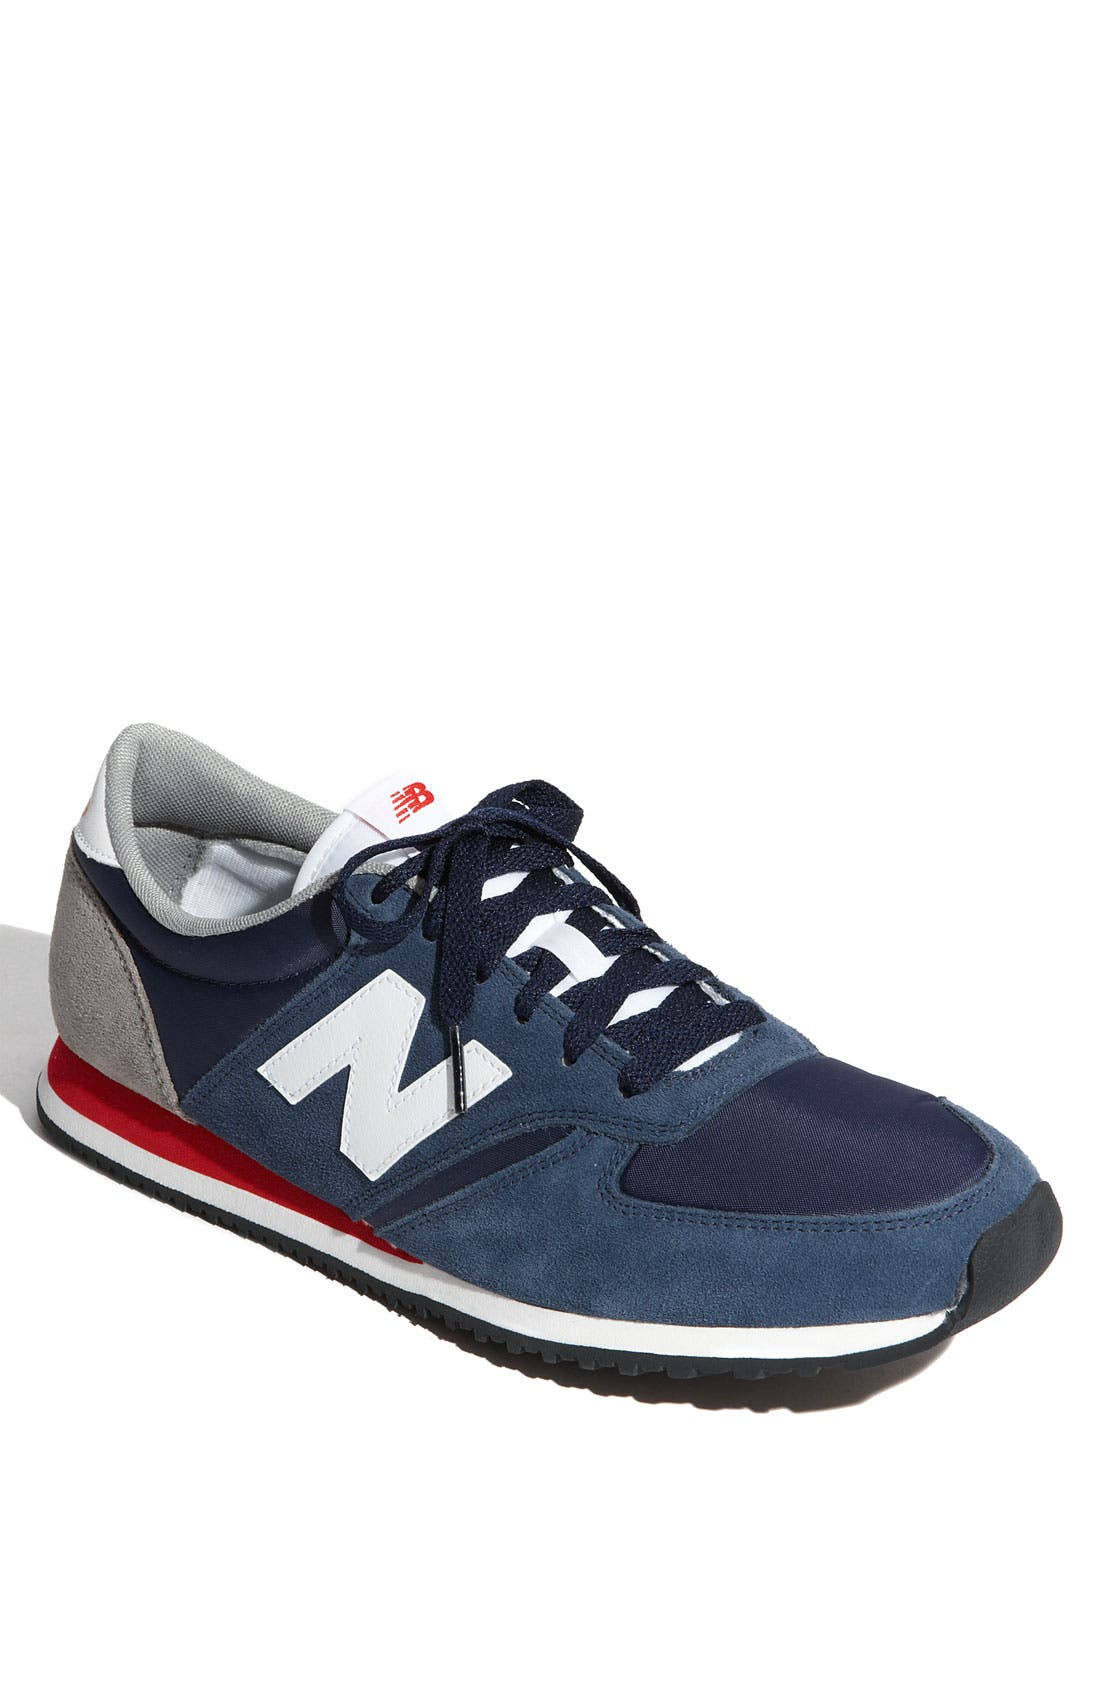 Alternate Image 1 Selected - New Balance '420' Sneaker